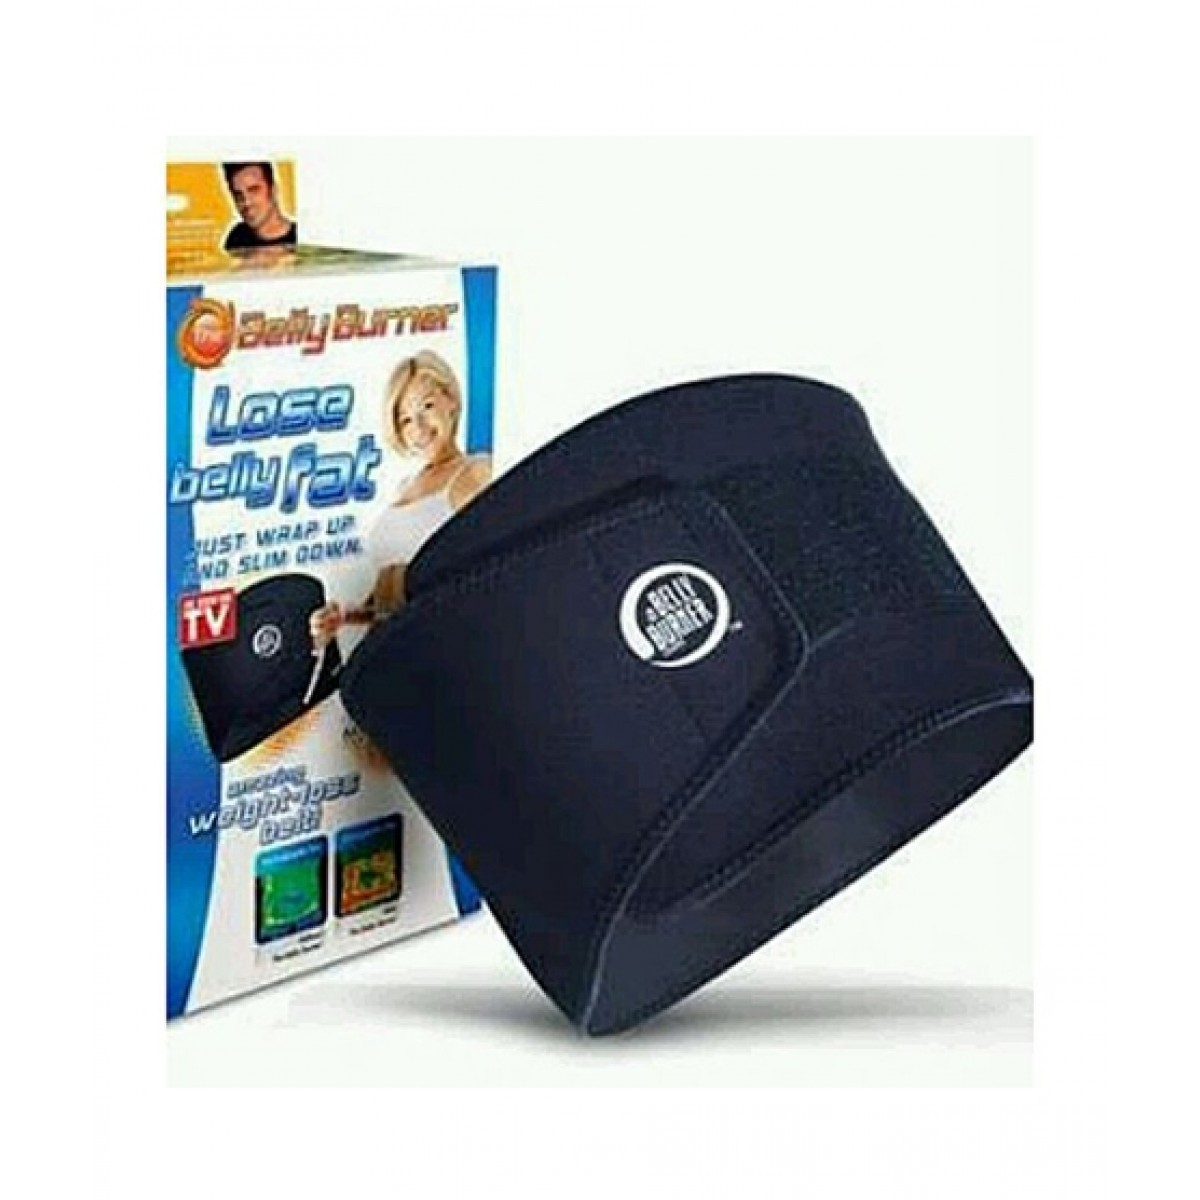 Reviews For Wsp Lose Belly Fat Amazing Weight Loss Belt Price In